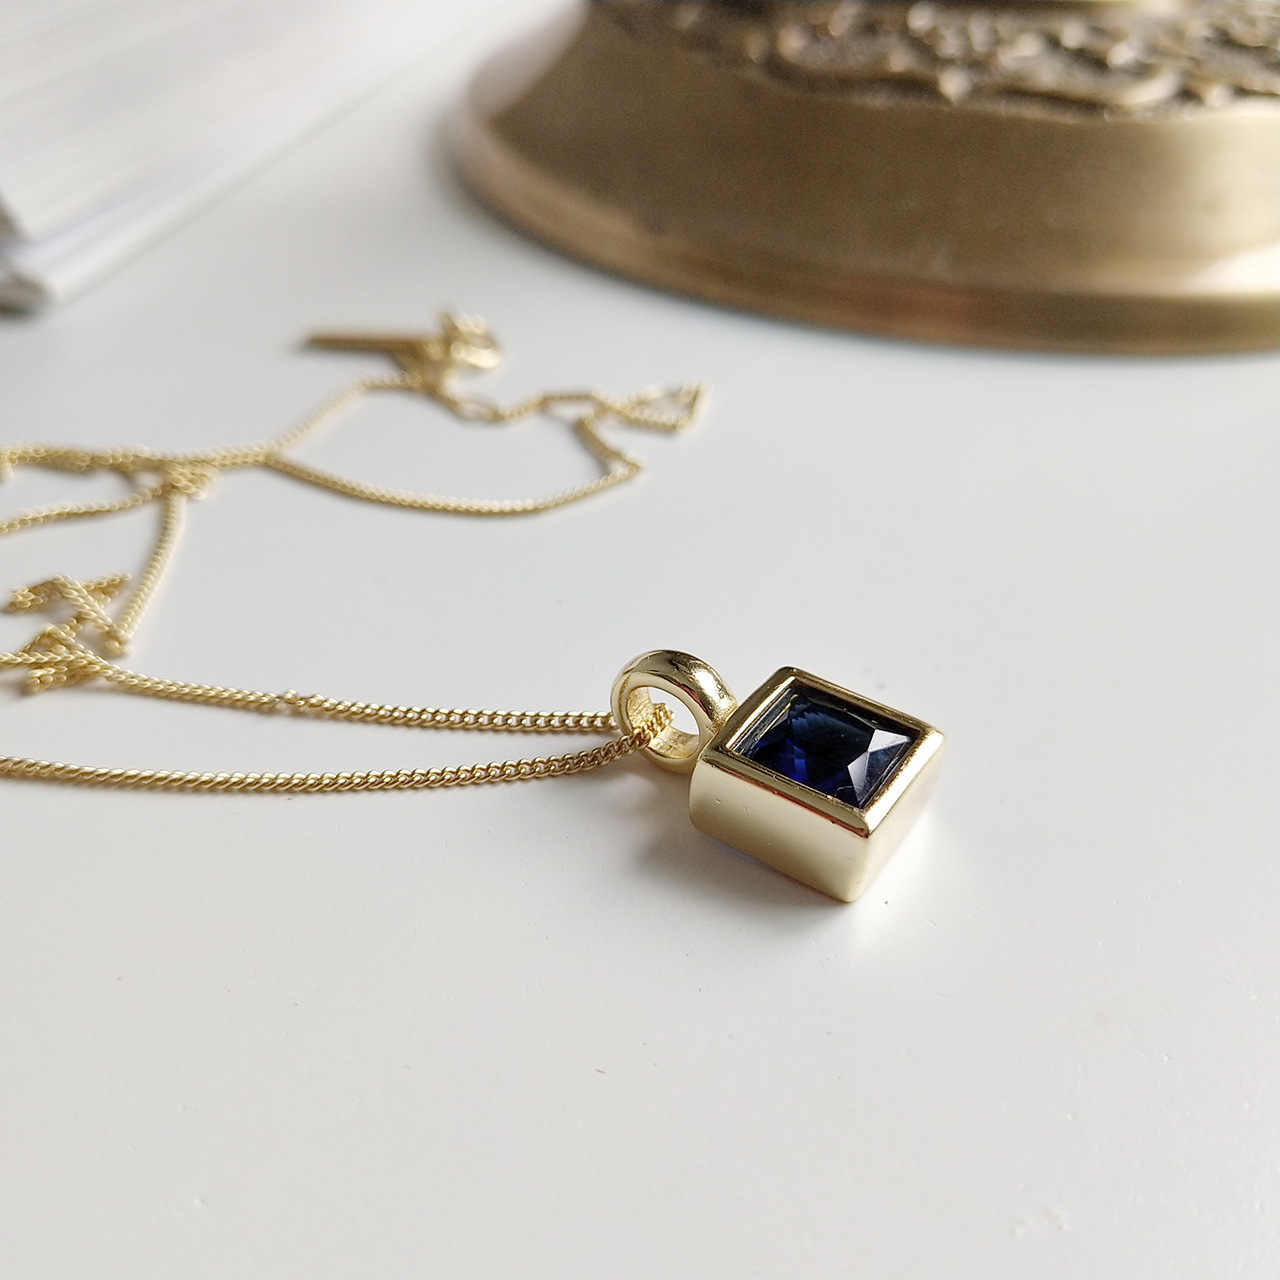 925 Sterling Silver Pendants Necklace Square Blue Sapphire Pendant 18K Gold Necklace 100% 925 Women Anniversary Festival Jewelry